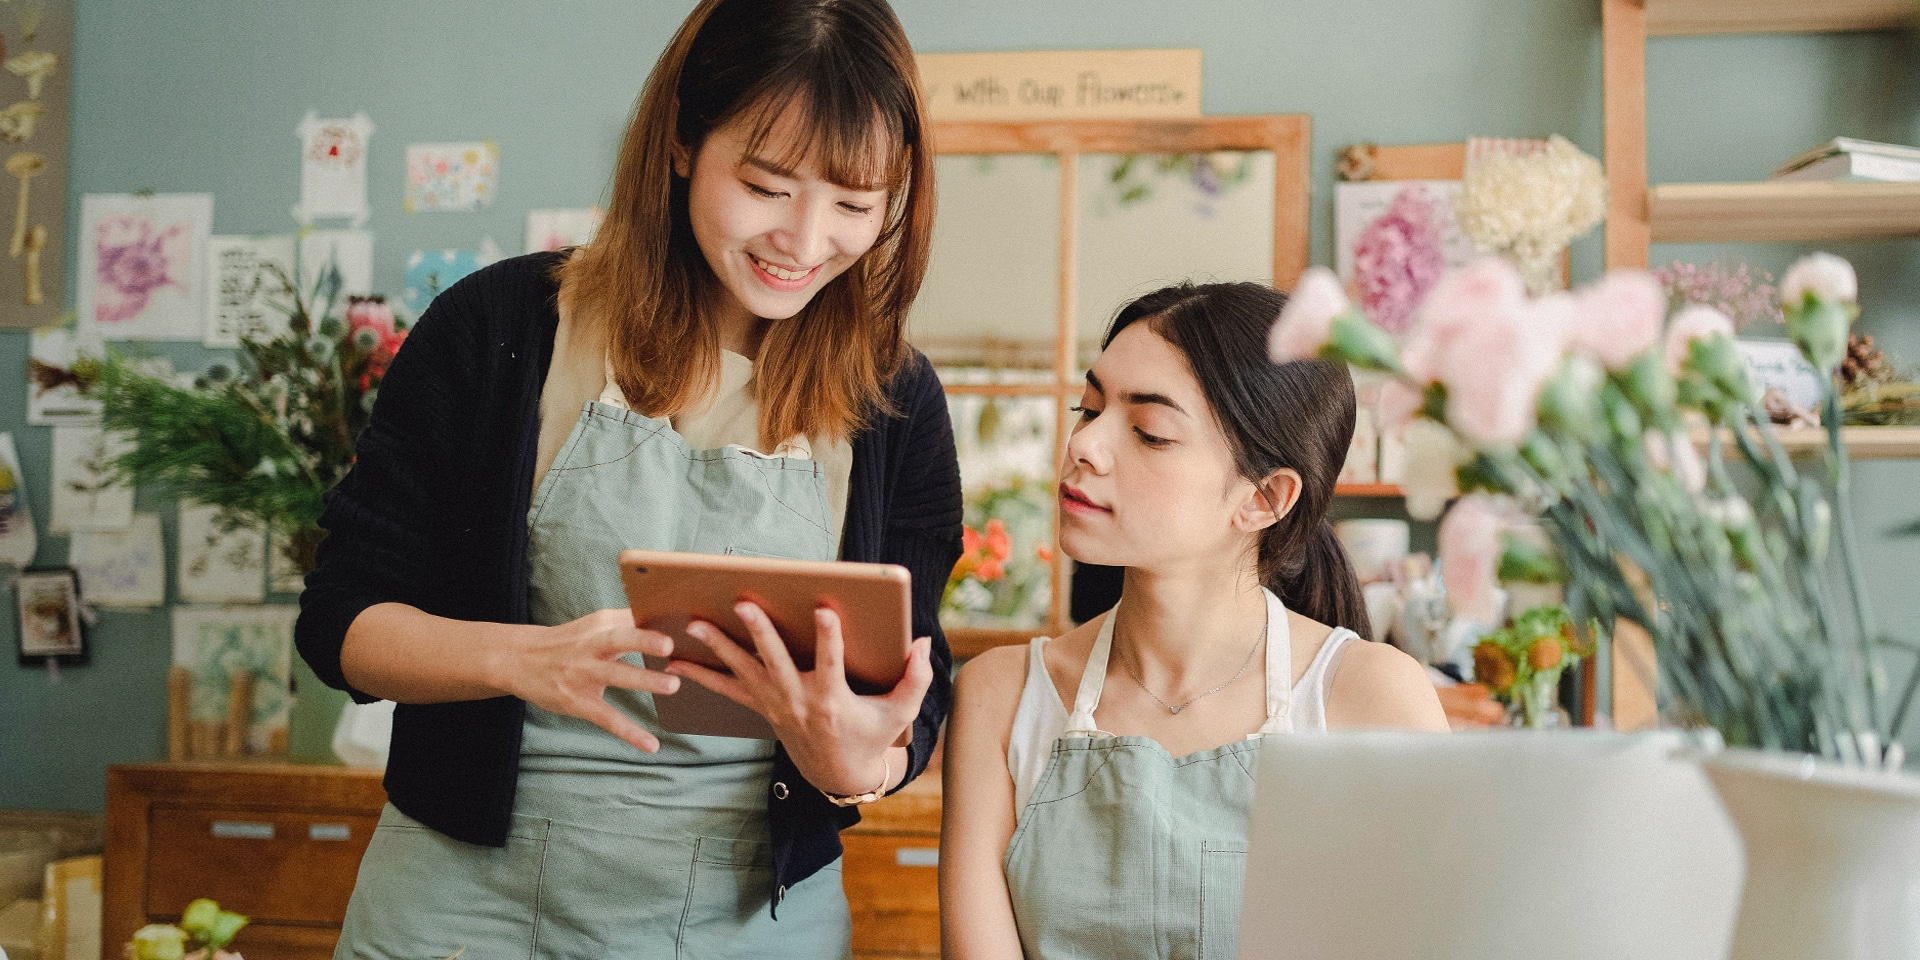 singapore women using tablet in their business